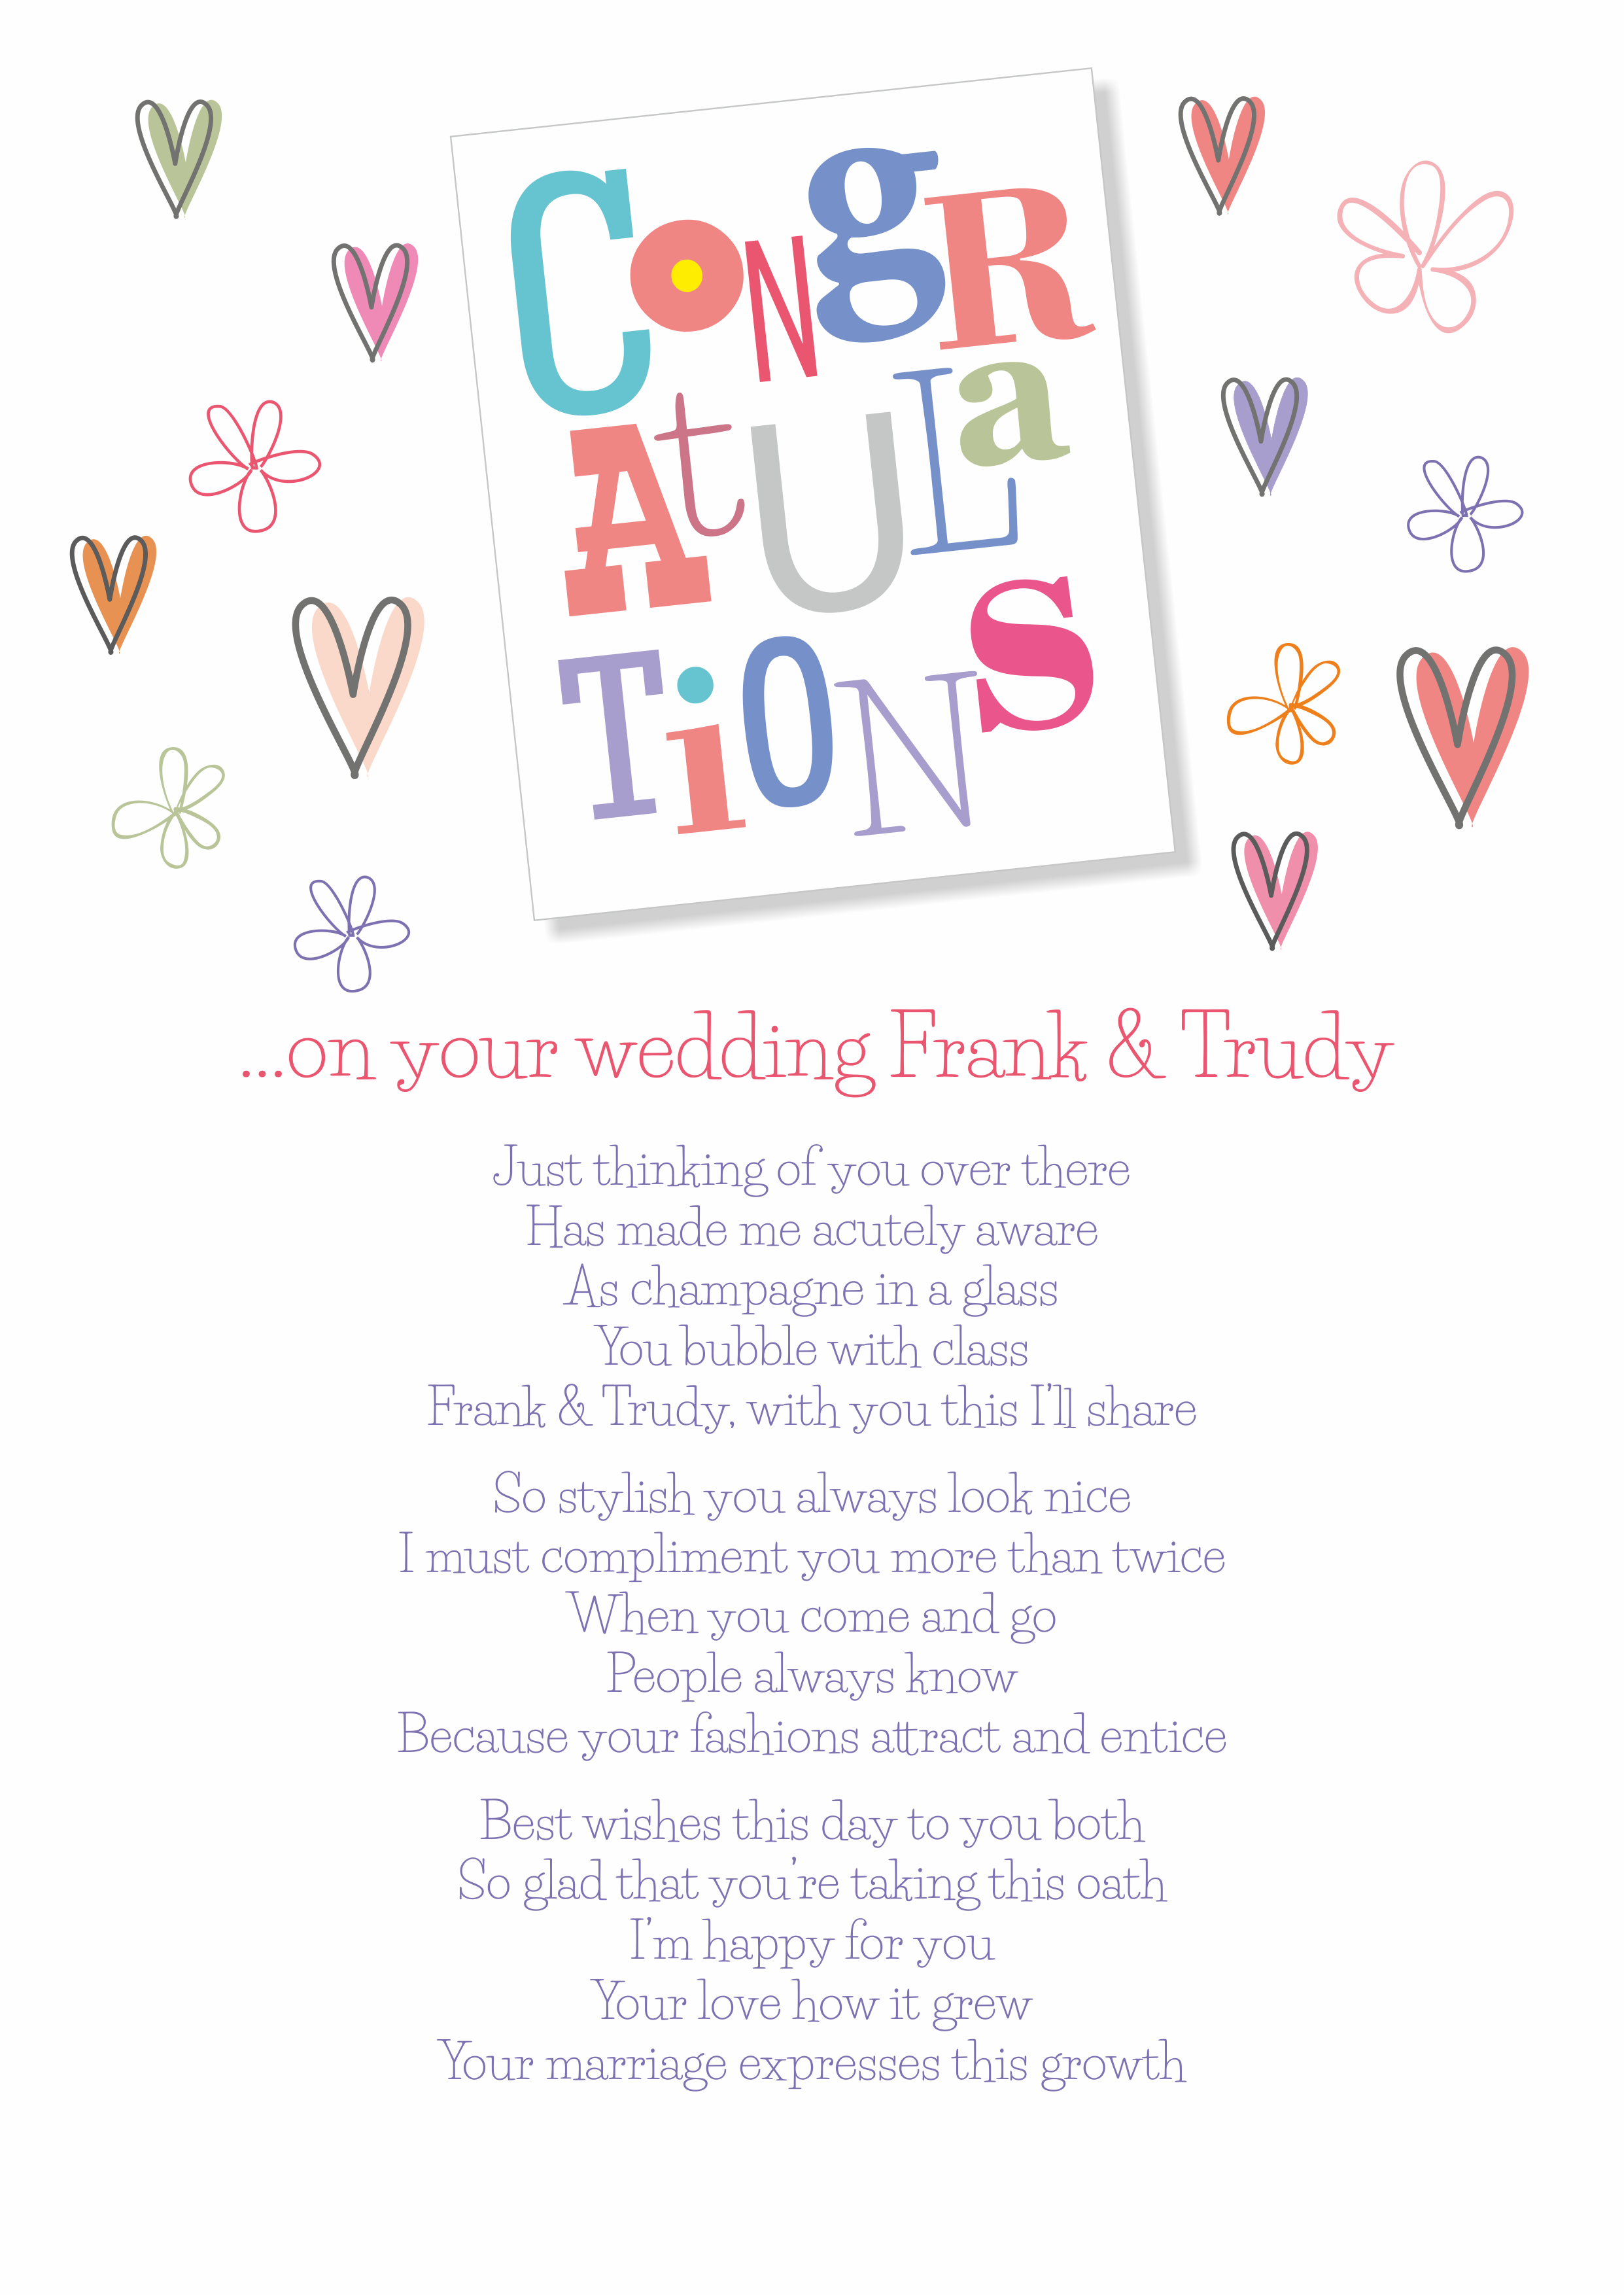 Fun and Amusing Wedding Poetry Card 4